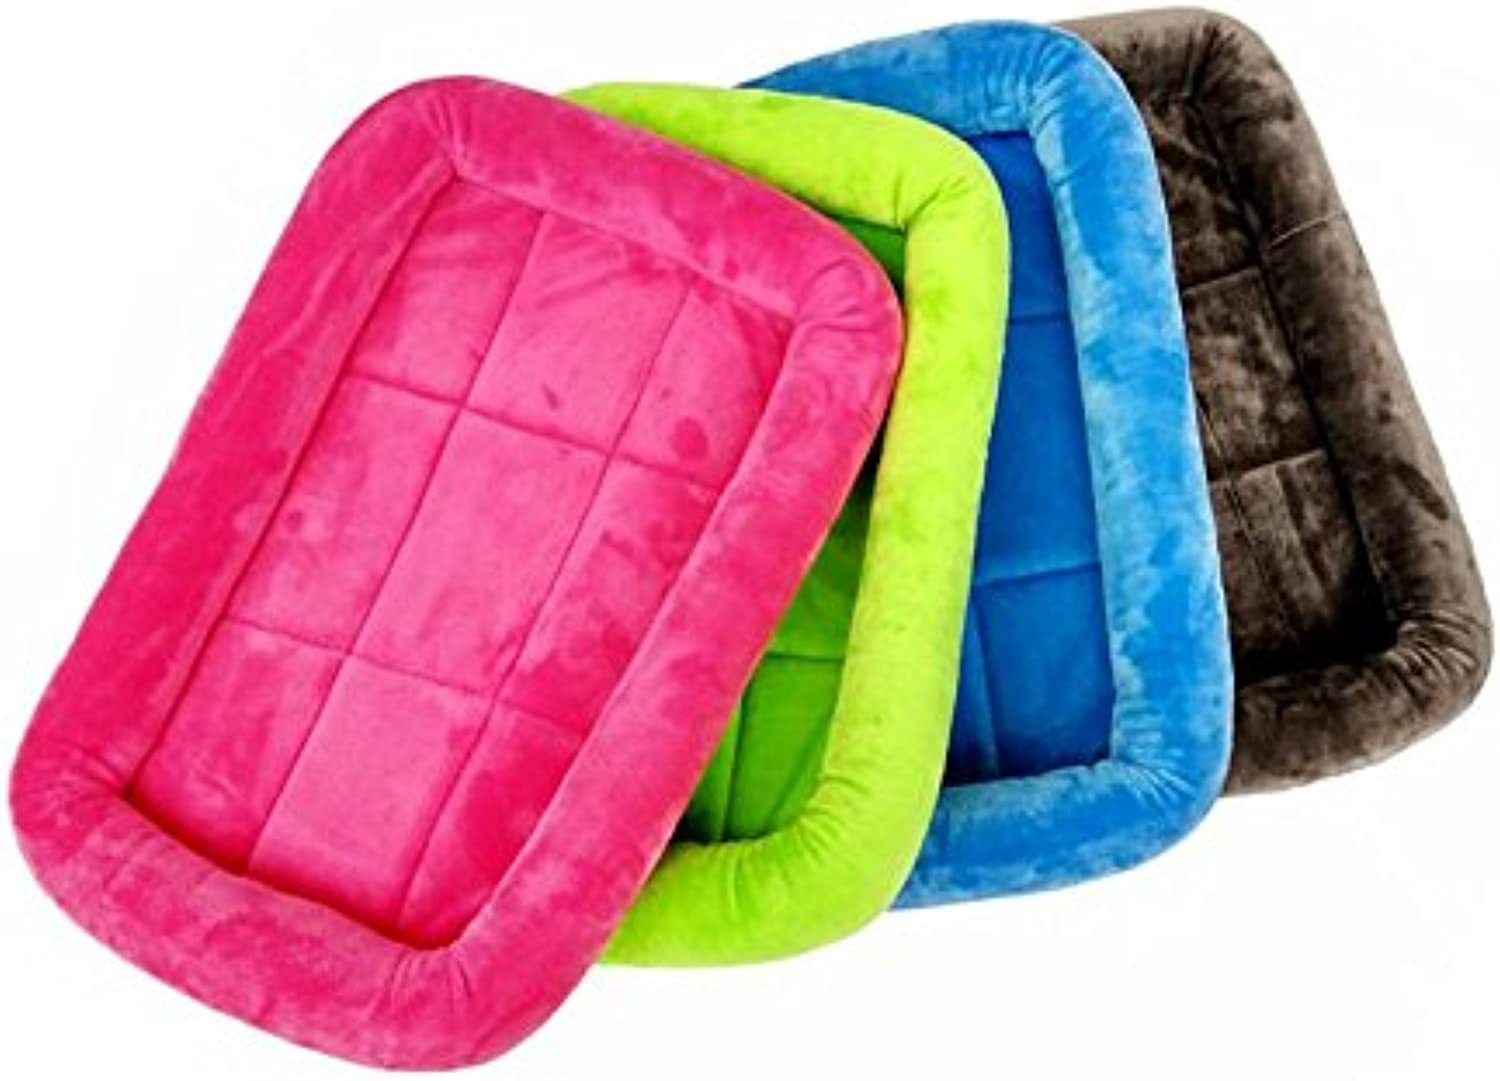 Fashion Shop Smooth Soft Blanket Mat Paf for Dogs 2sizes and 5 colors for Choose (Green, M 24 16 2.2 )